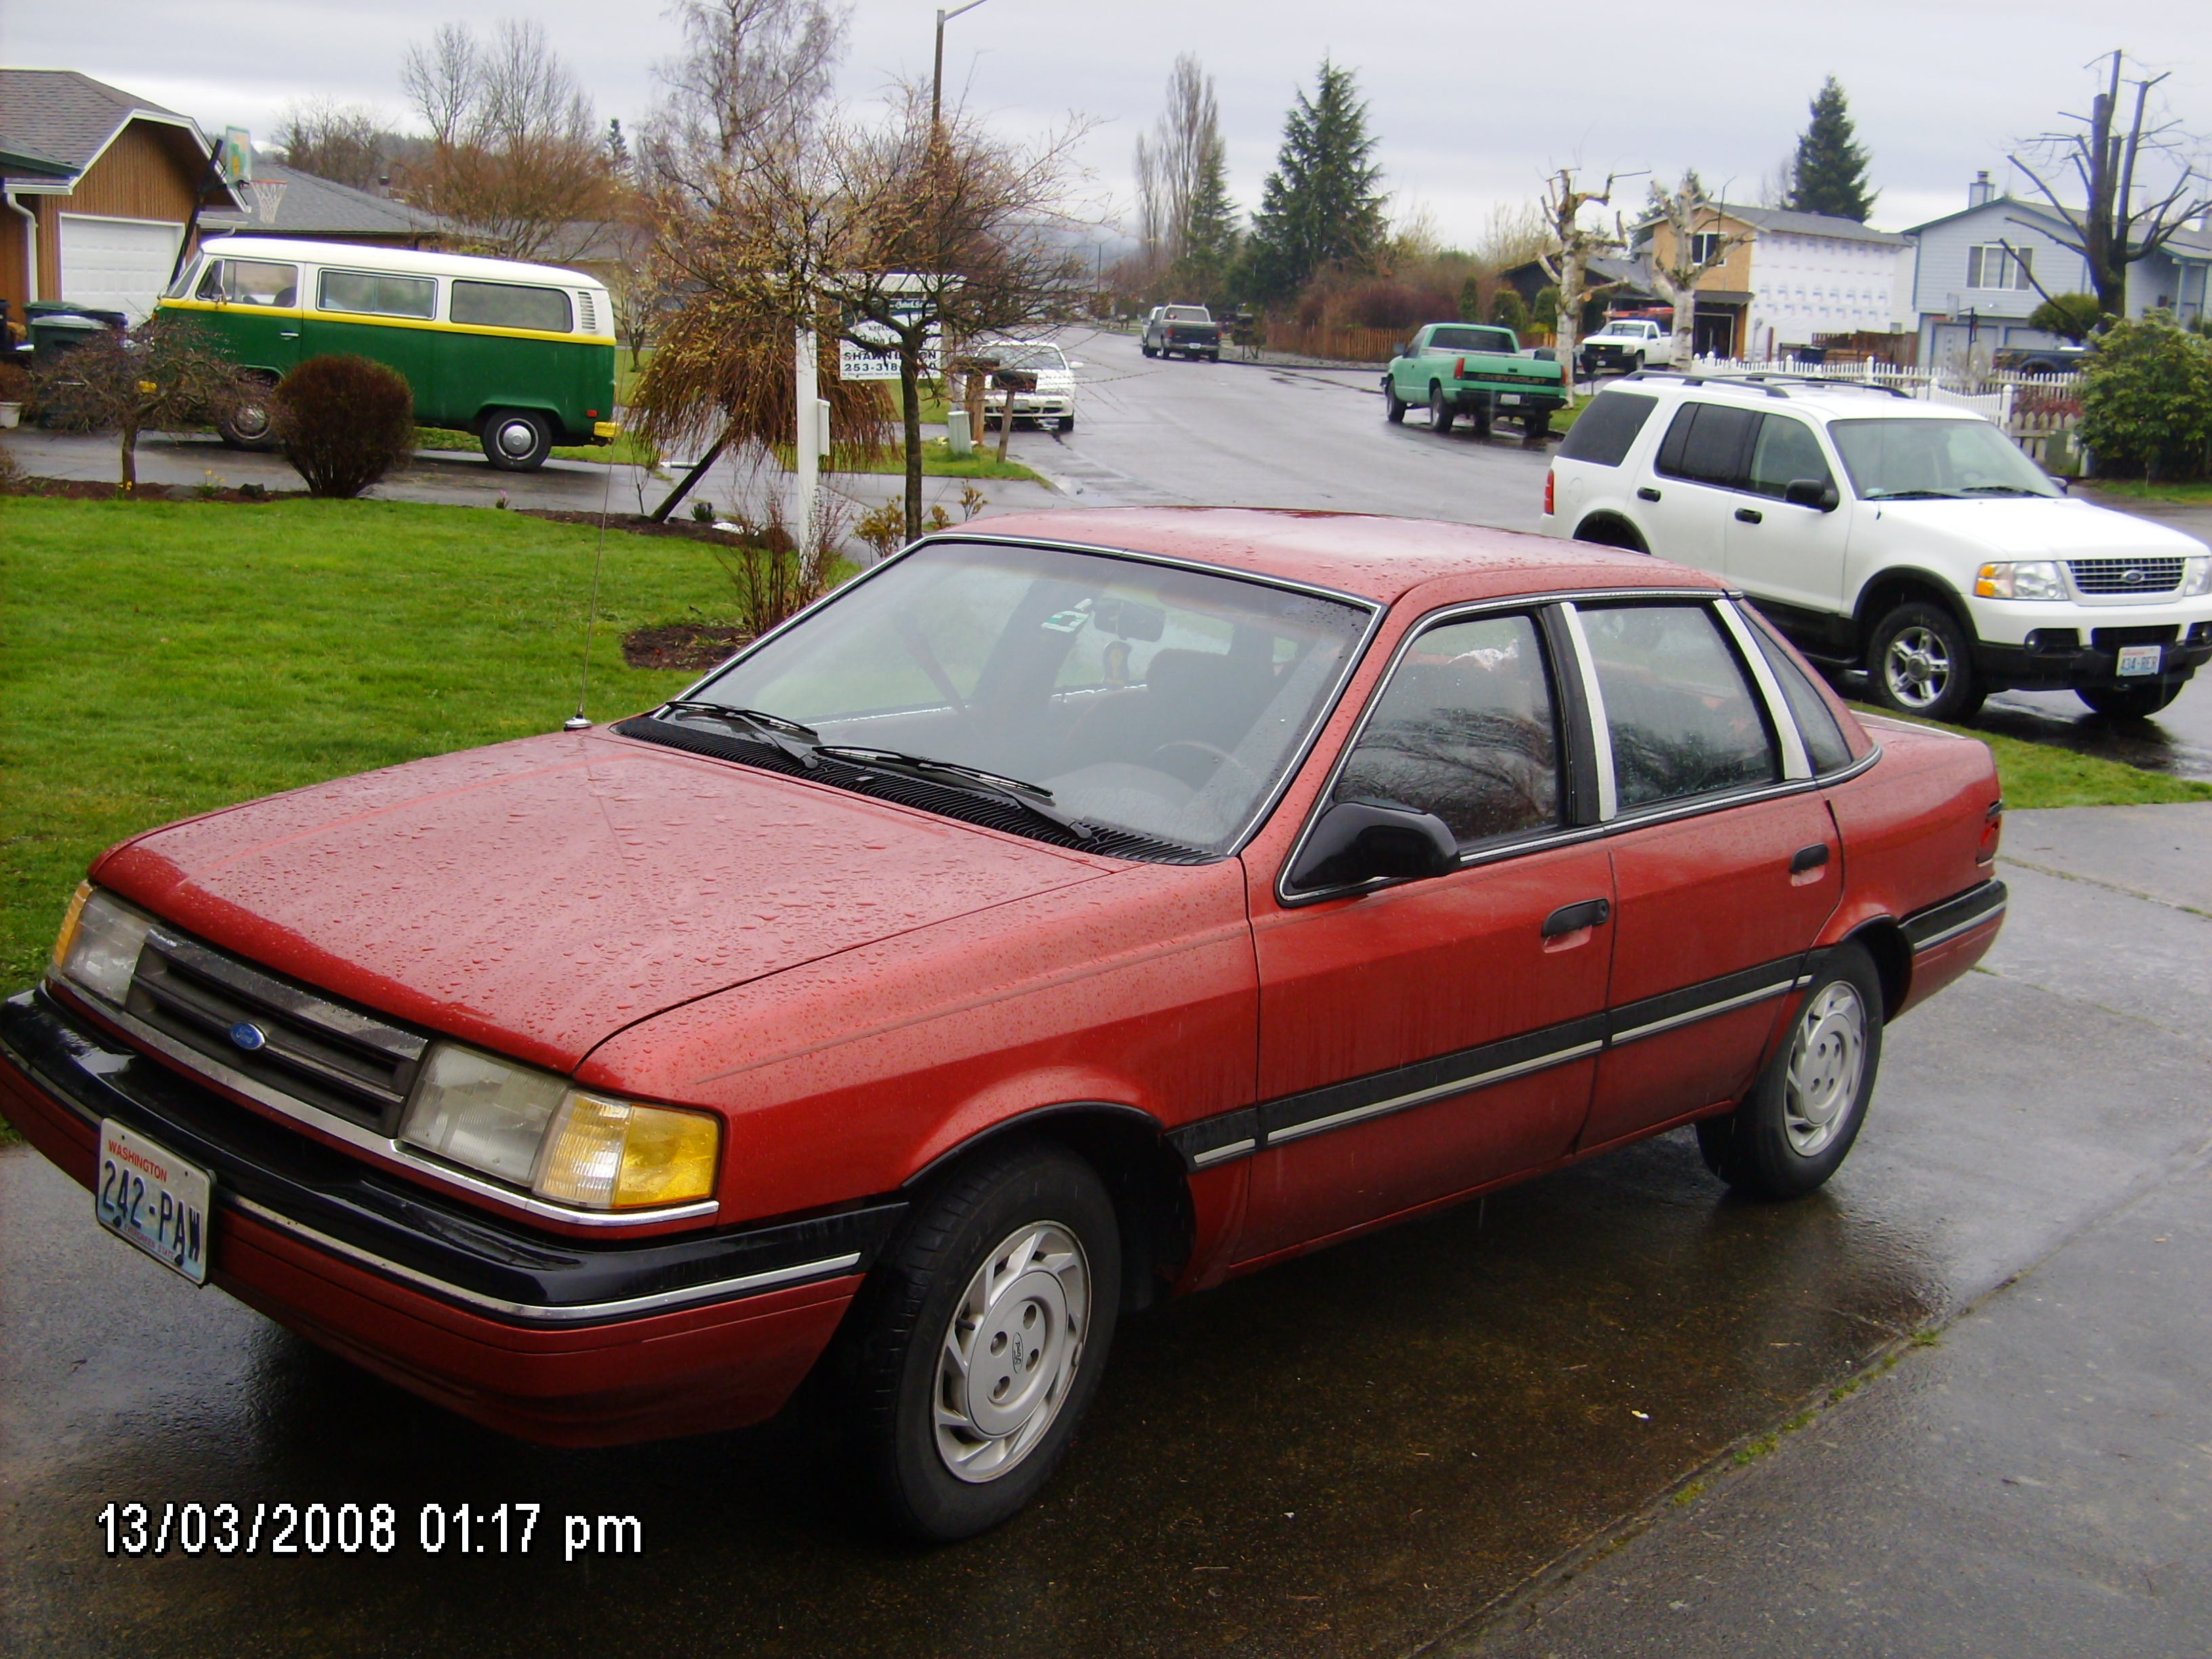 1988 ford tempo with 6602 1991 Ford Tempo 7 on 2005 Ford F 150 Pictures C5234 pi36199294 also 6602 1991 Ford Tempo 7 further 2006 Ford Fiesta Pictures C9340 pi15960767 furthermore 6 Carros Abandonados Em Natal Rn Que Voce Precisa Ver also 2002 Ford Ranger Pictures C149 pi36251977.